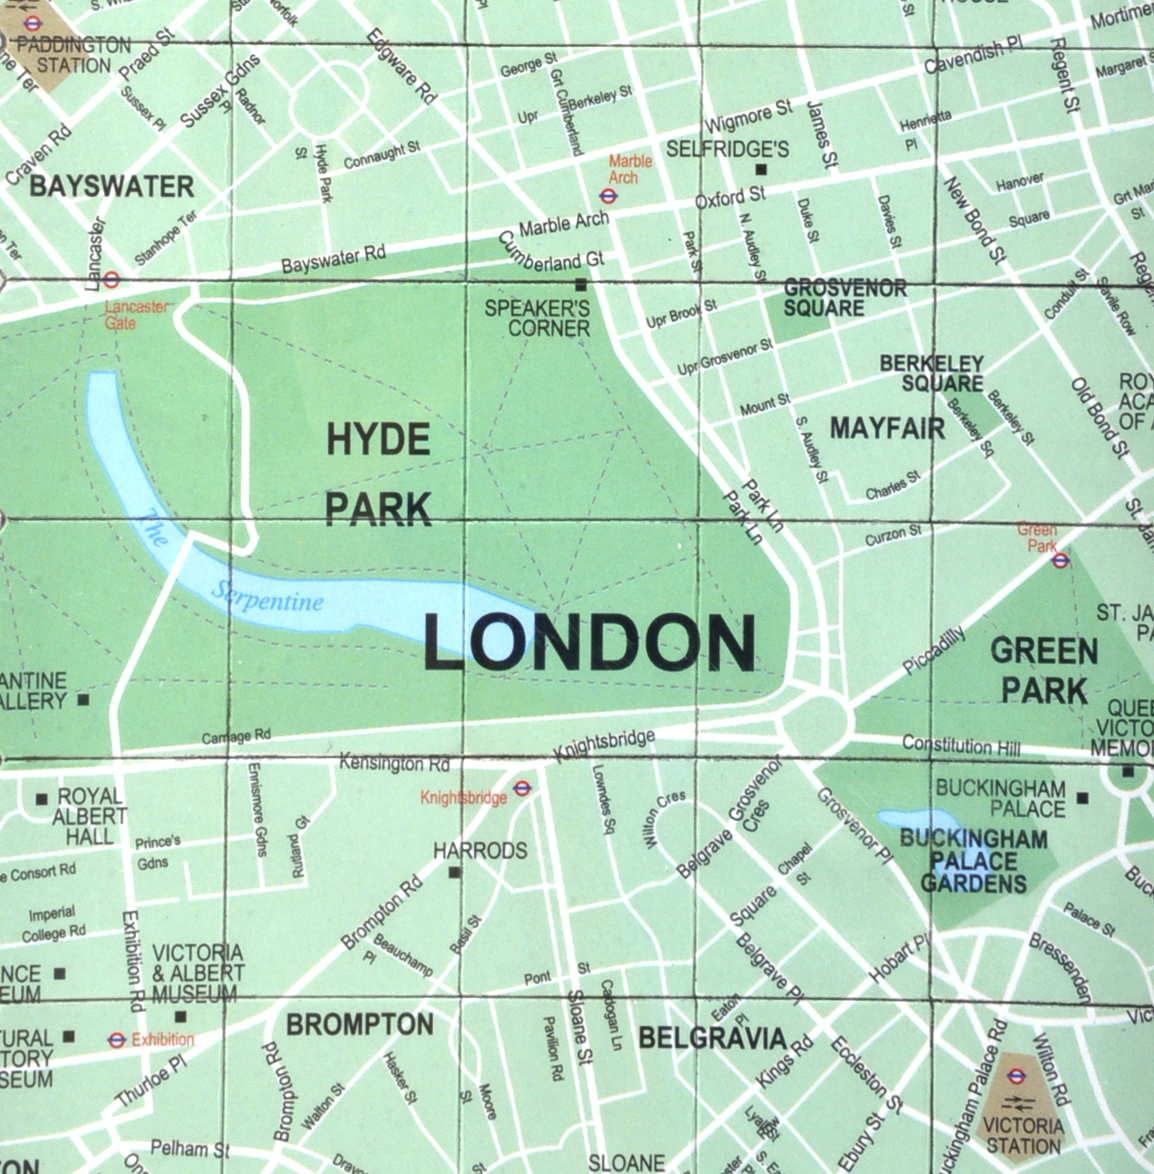 london city map fridge magnet puzzle learn the city map. Black Bedroom Furniture Sets. Home Design Ideas